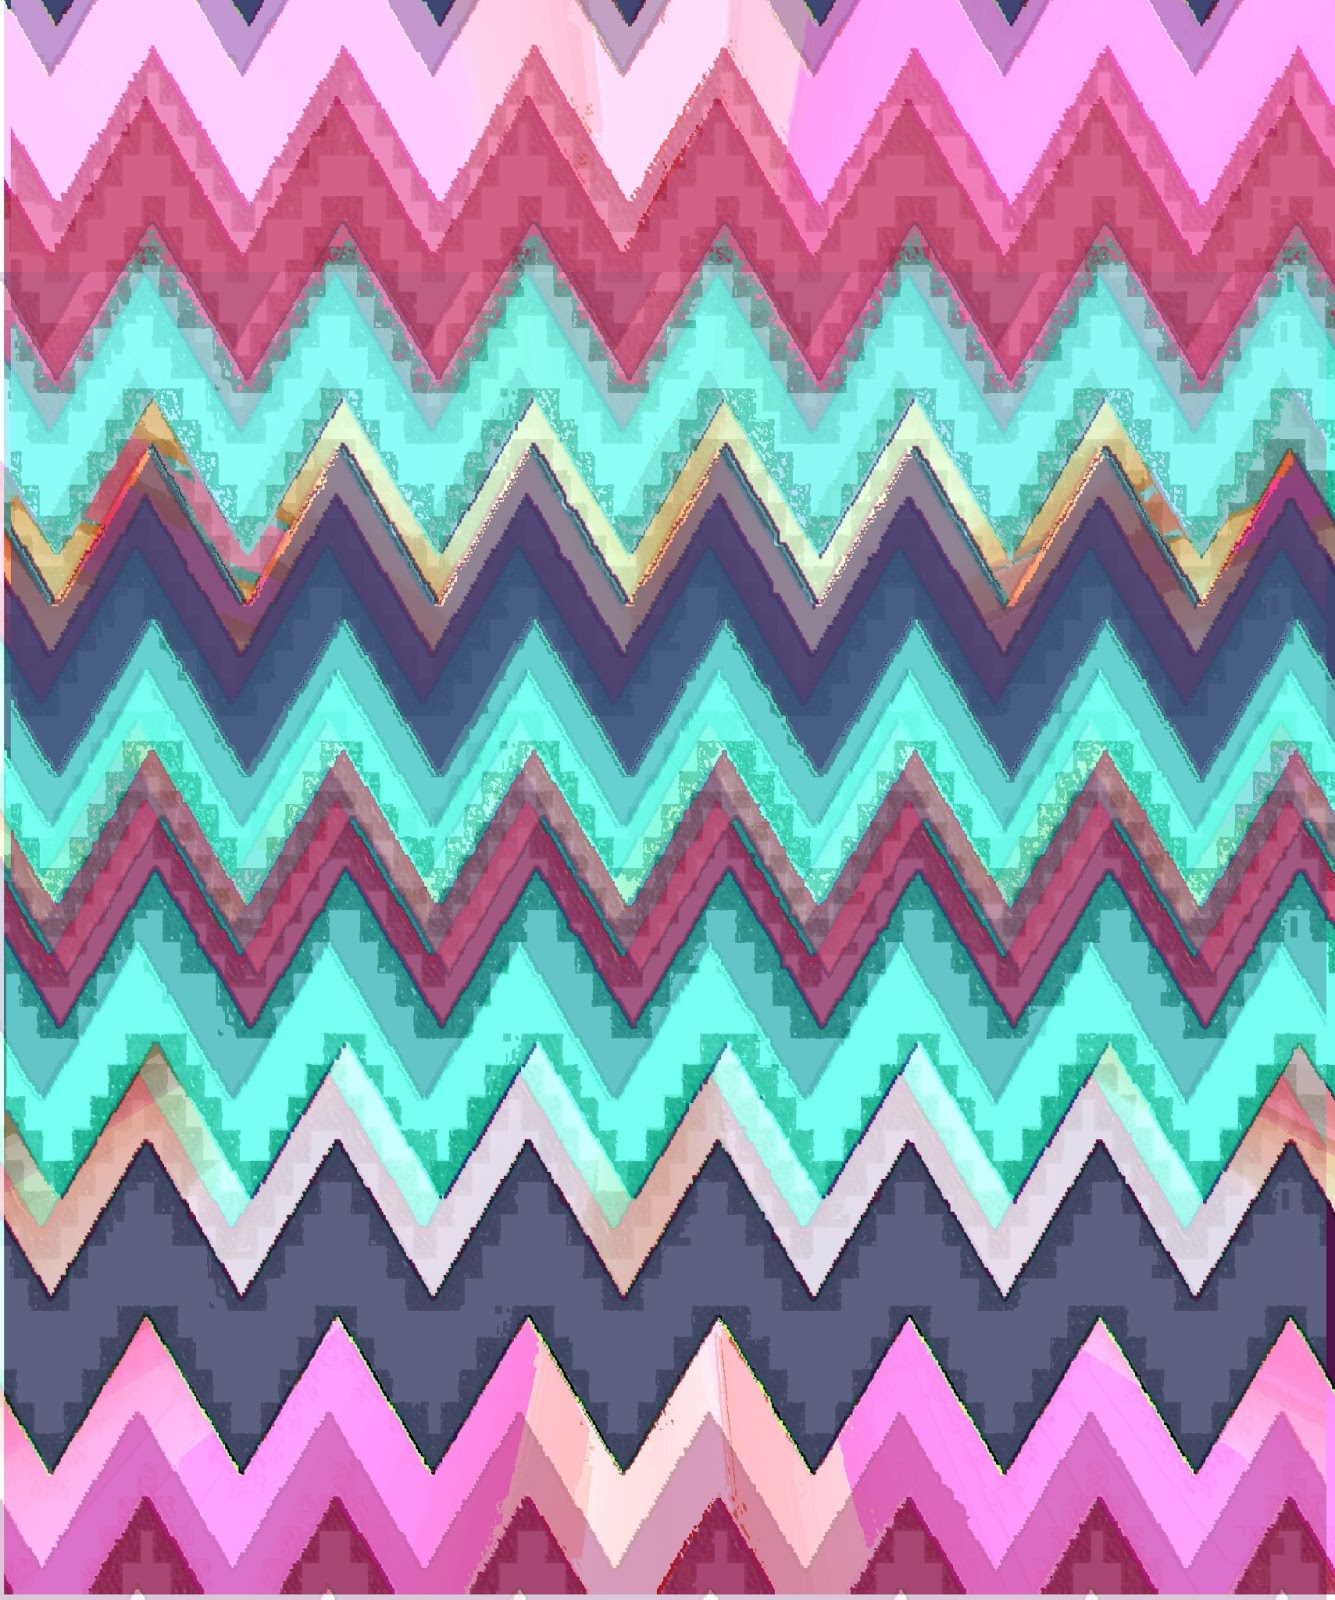 Displaying 20 Images For   Cute Chevron Patterns 1335x1600